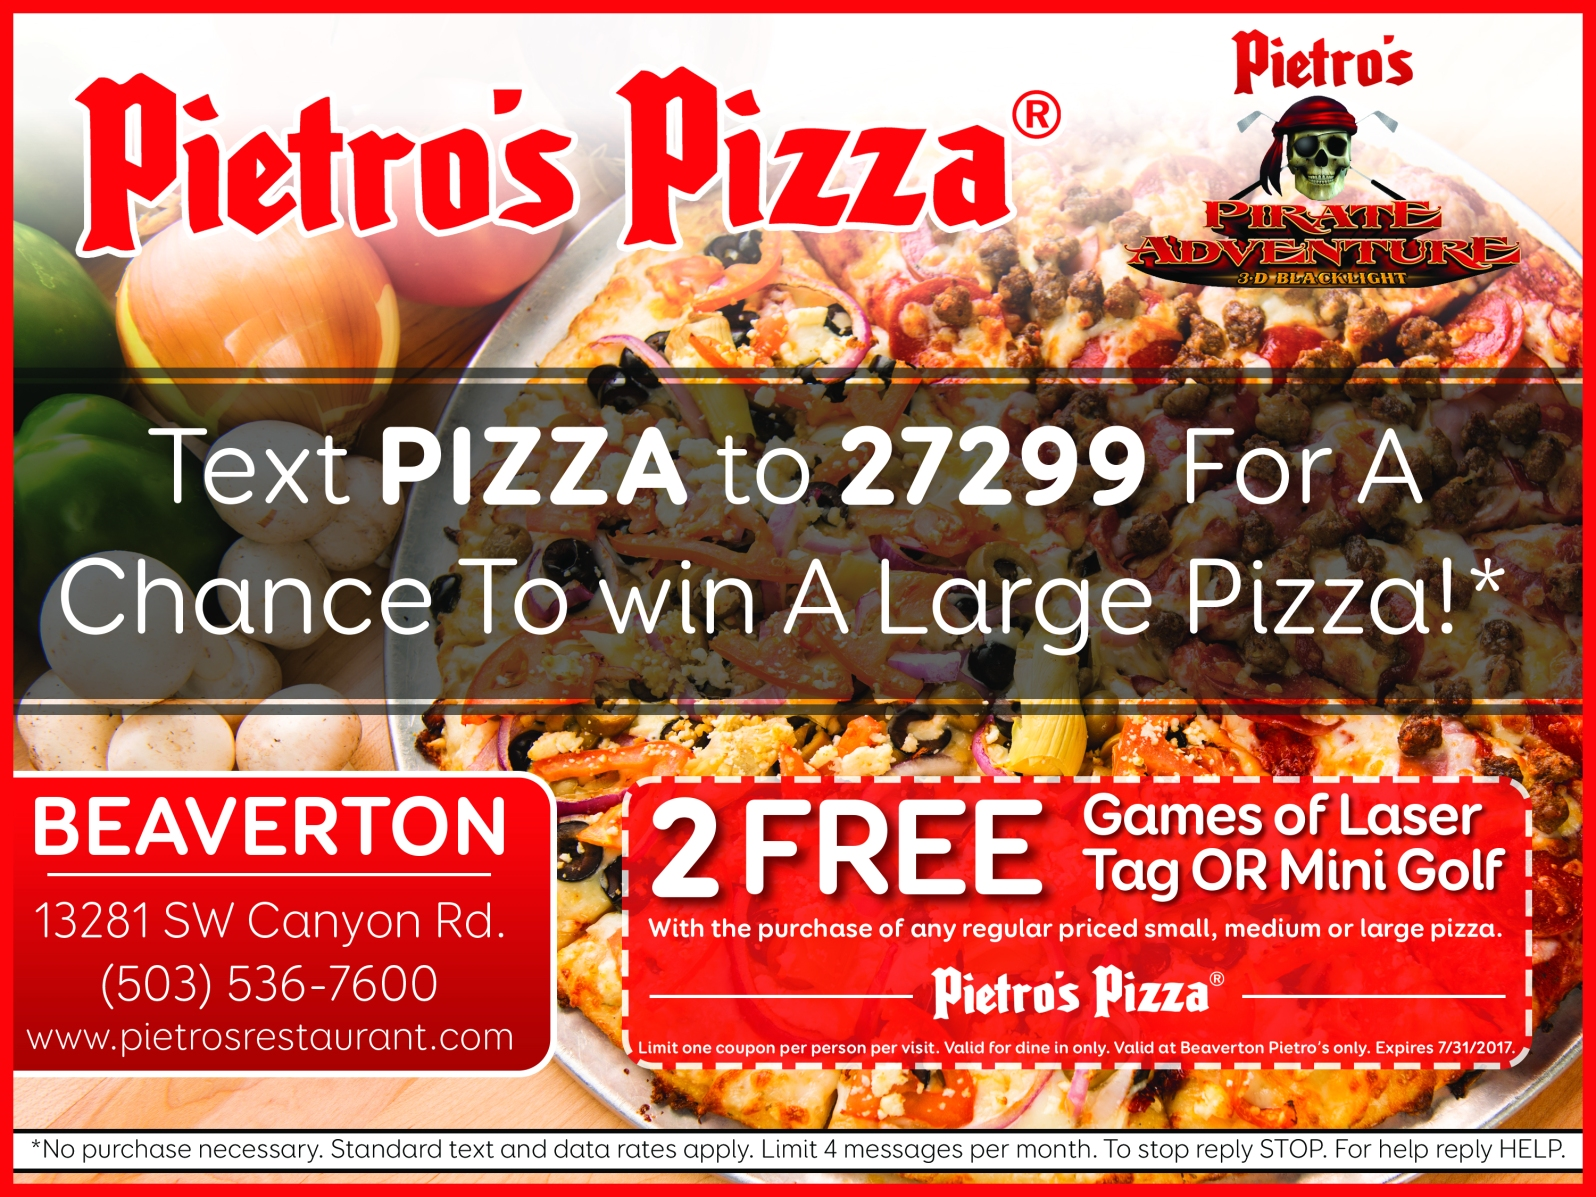 http://www.pietrosrestaurants.com/locations/beaverton/